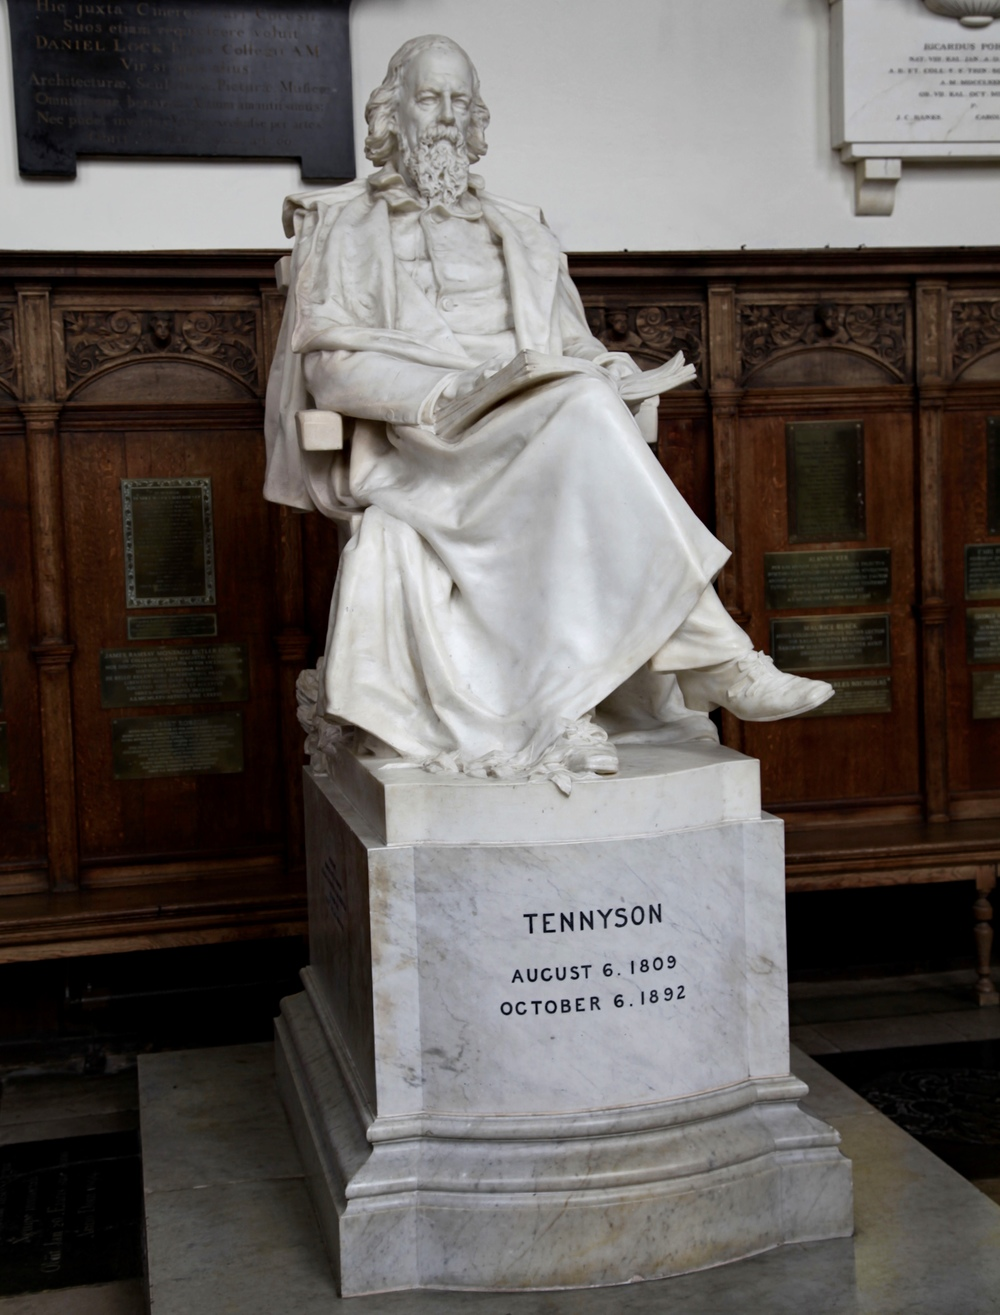 The Grand Old Man of Letters, statue of the Poet Laureate in Trinity College Chapel, Cambridge